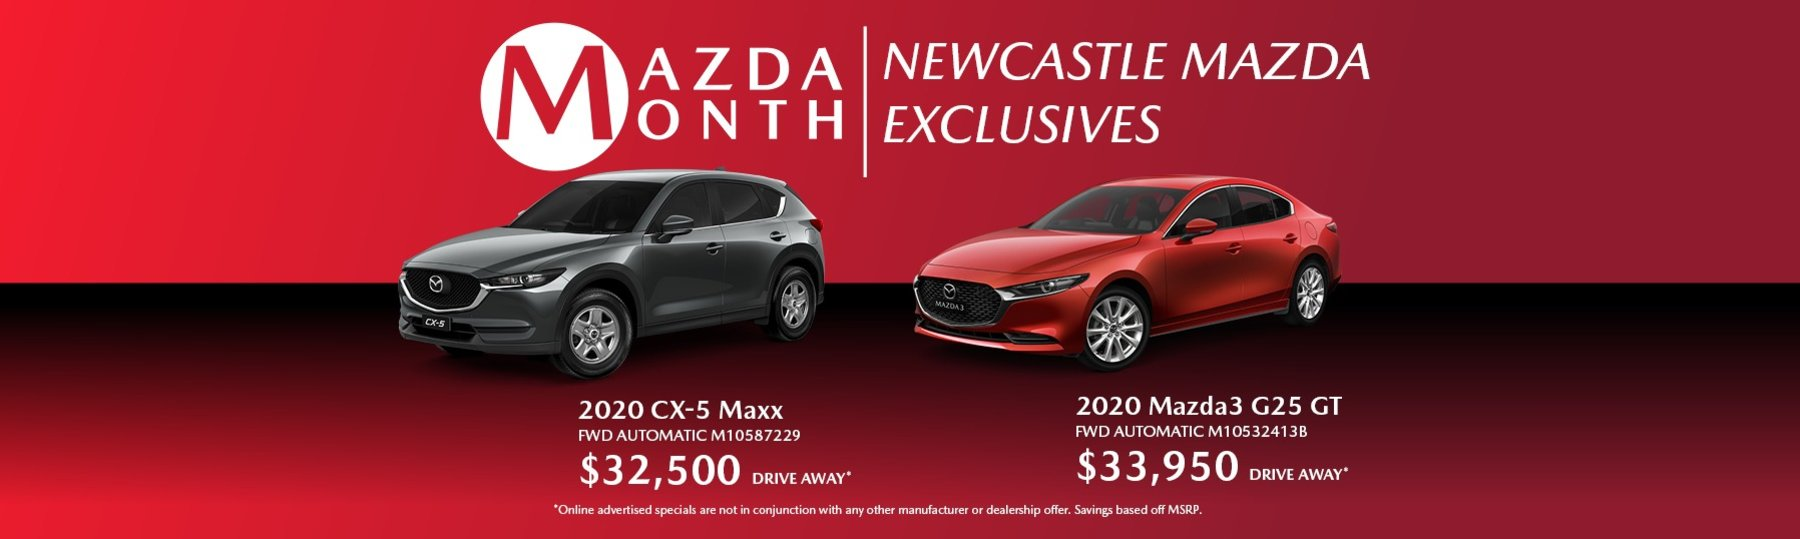 Mazda month exclusives